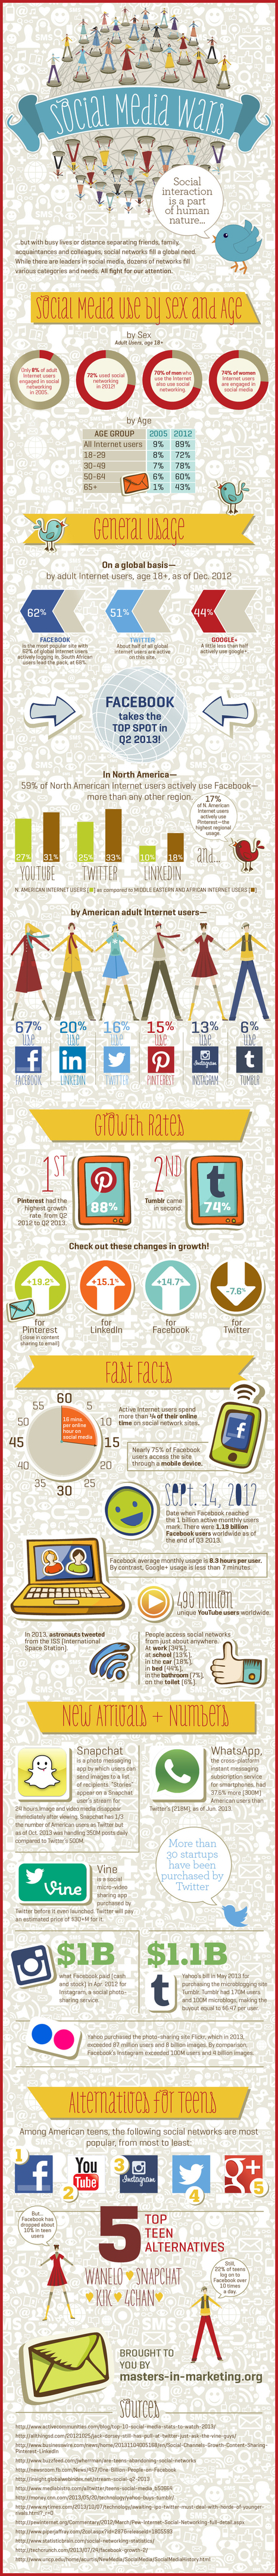 The Social Media Wars [INFOGRAPHIC] | Web 2.0 infos | Scoop.it